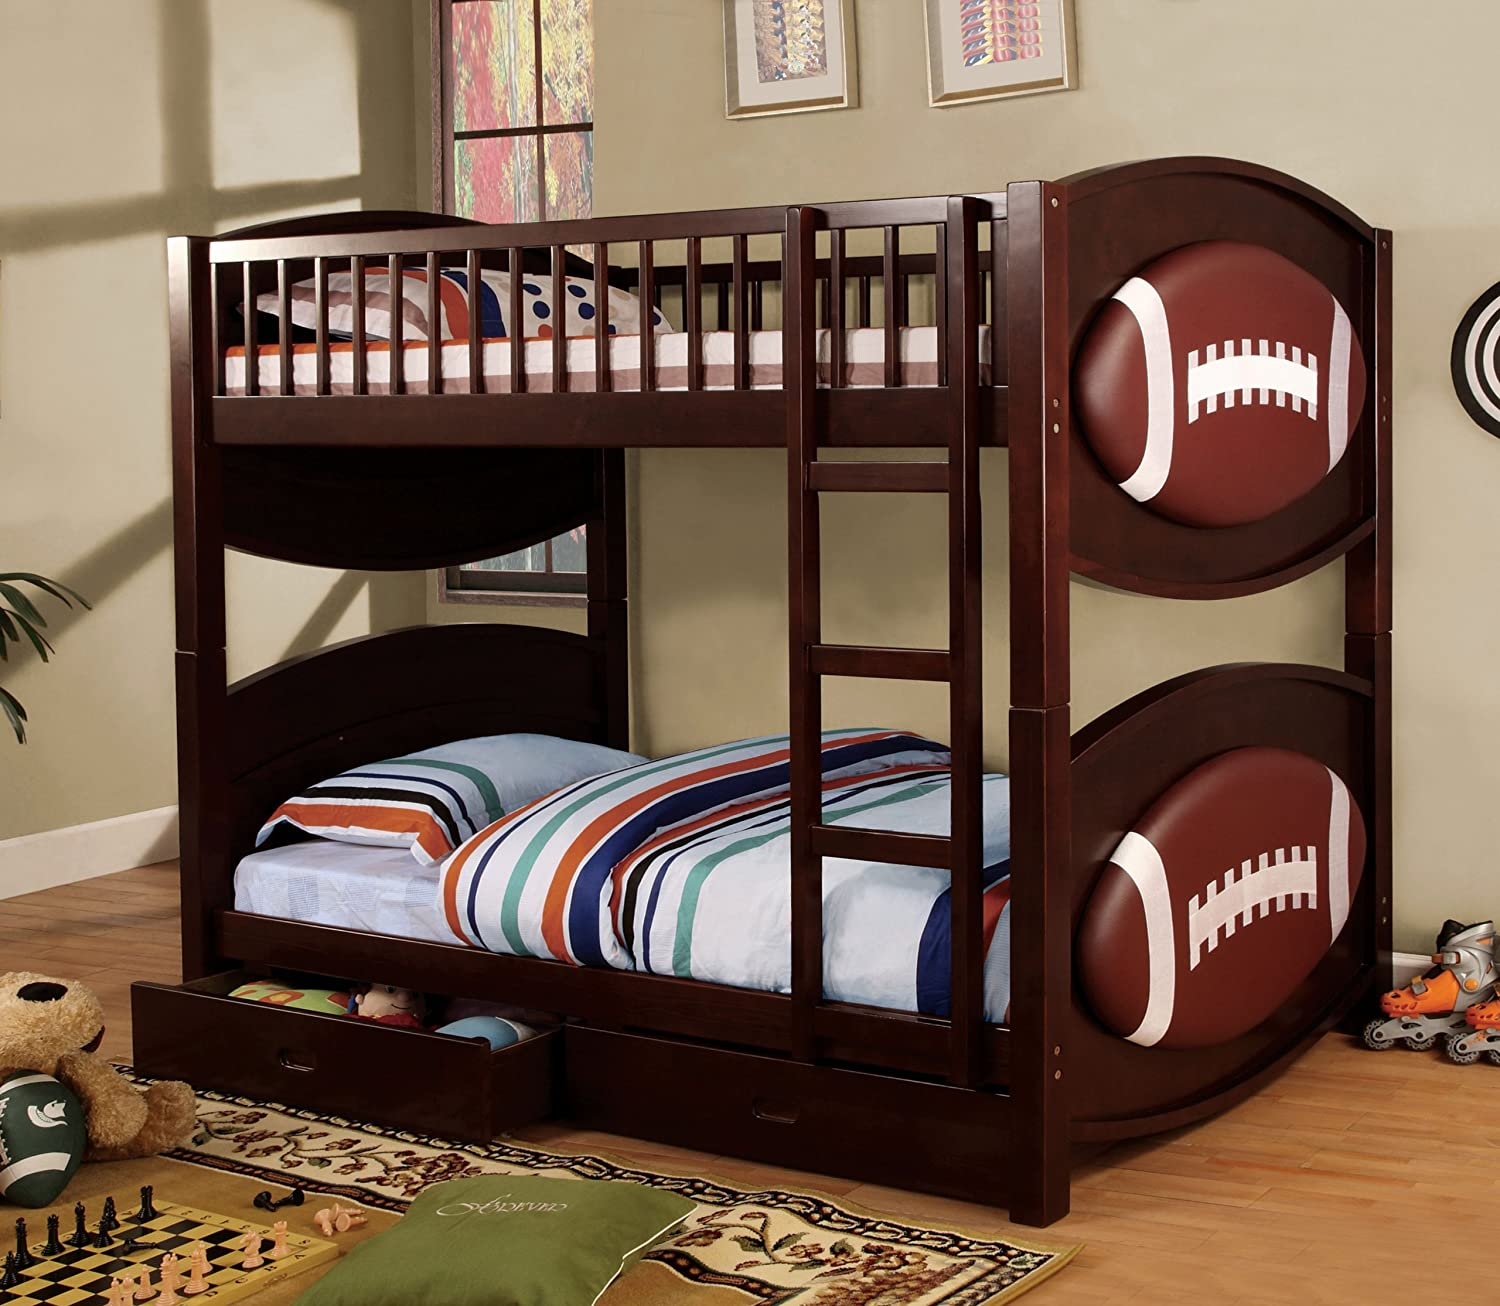 baseball bedroom furniture. Amazon com  Furniture of America Baseball Bunk Bed with 2 Drawers Twin Kitchen Dining